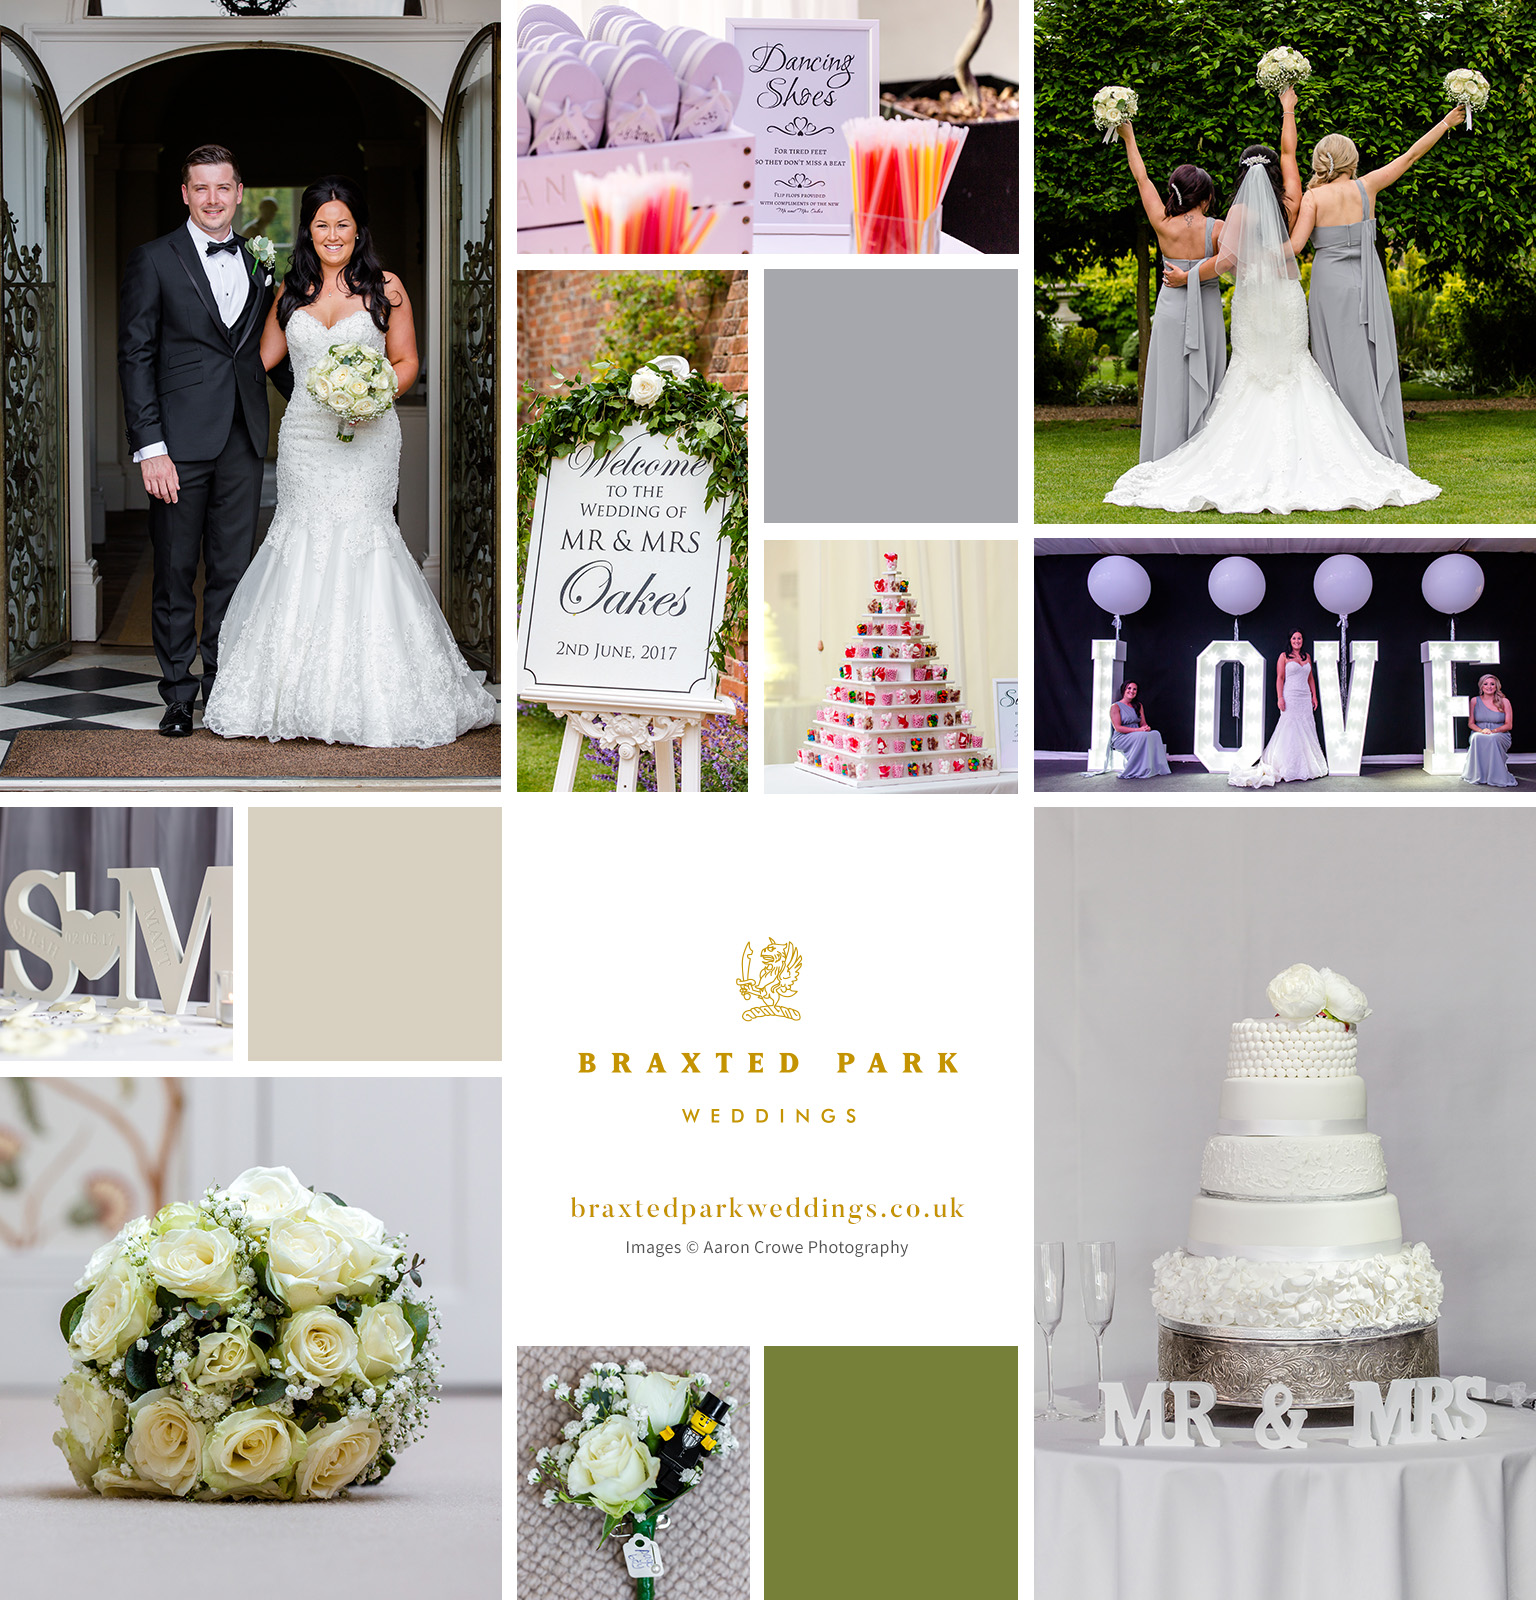 Sarah and Matthew's real life wedding at Braxted Park